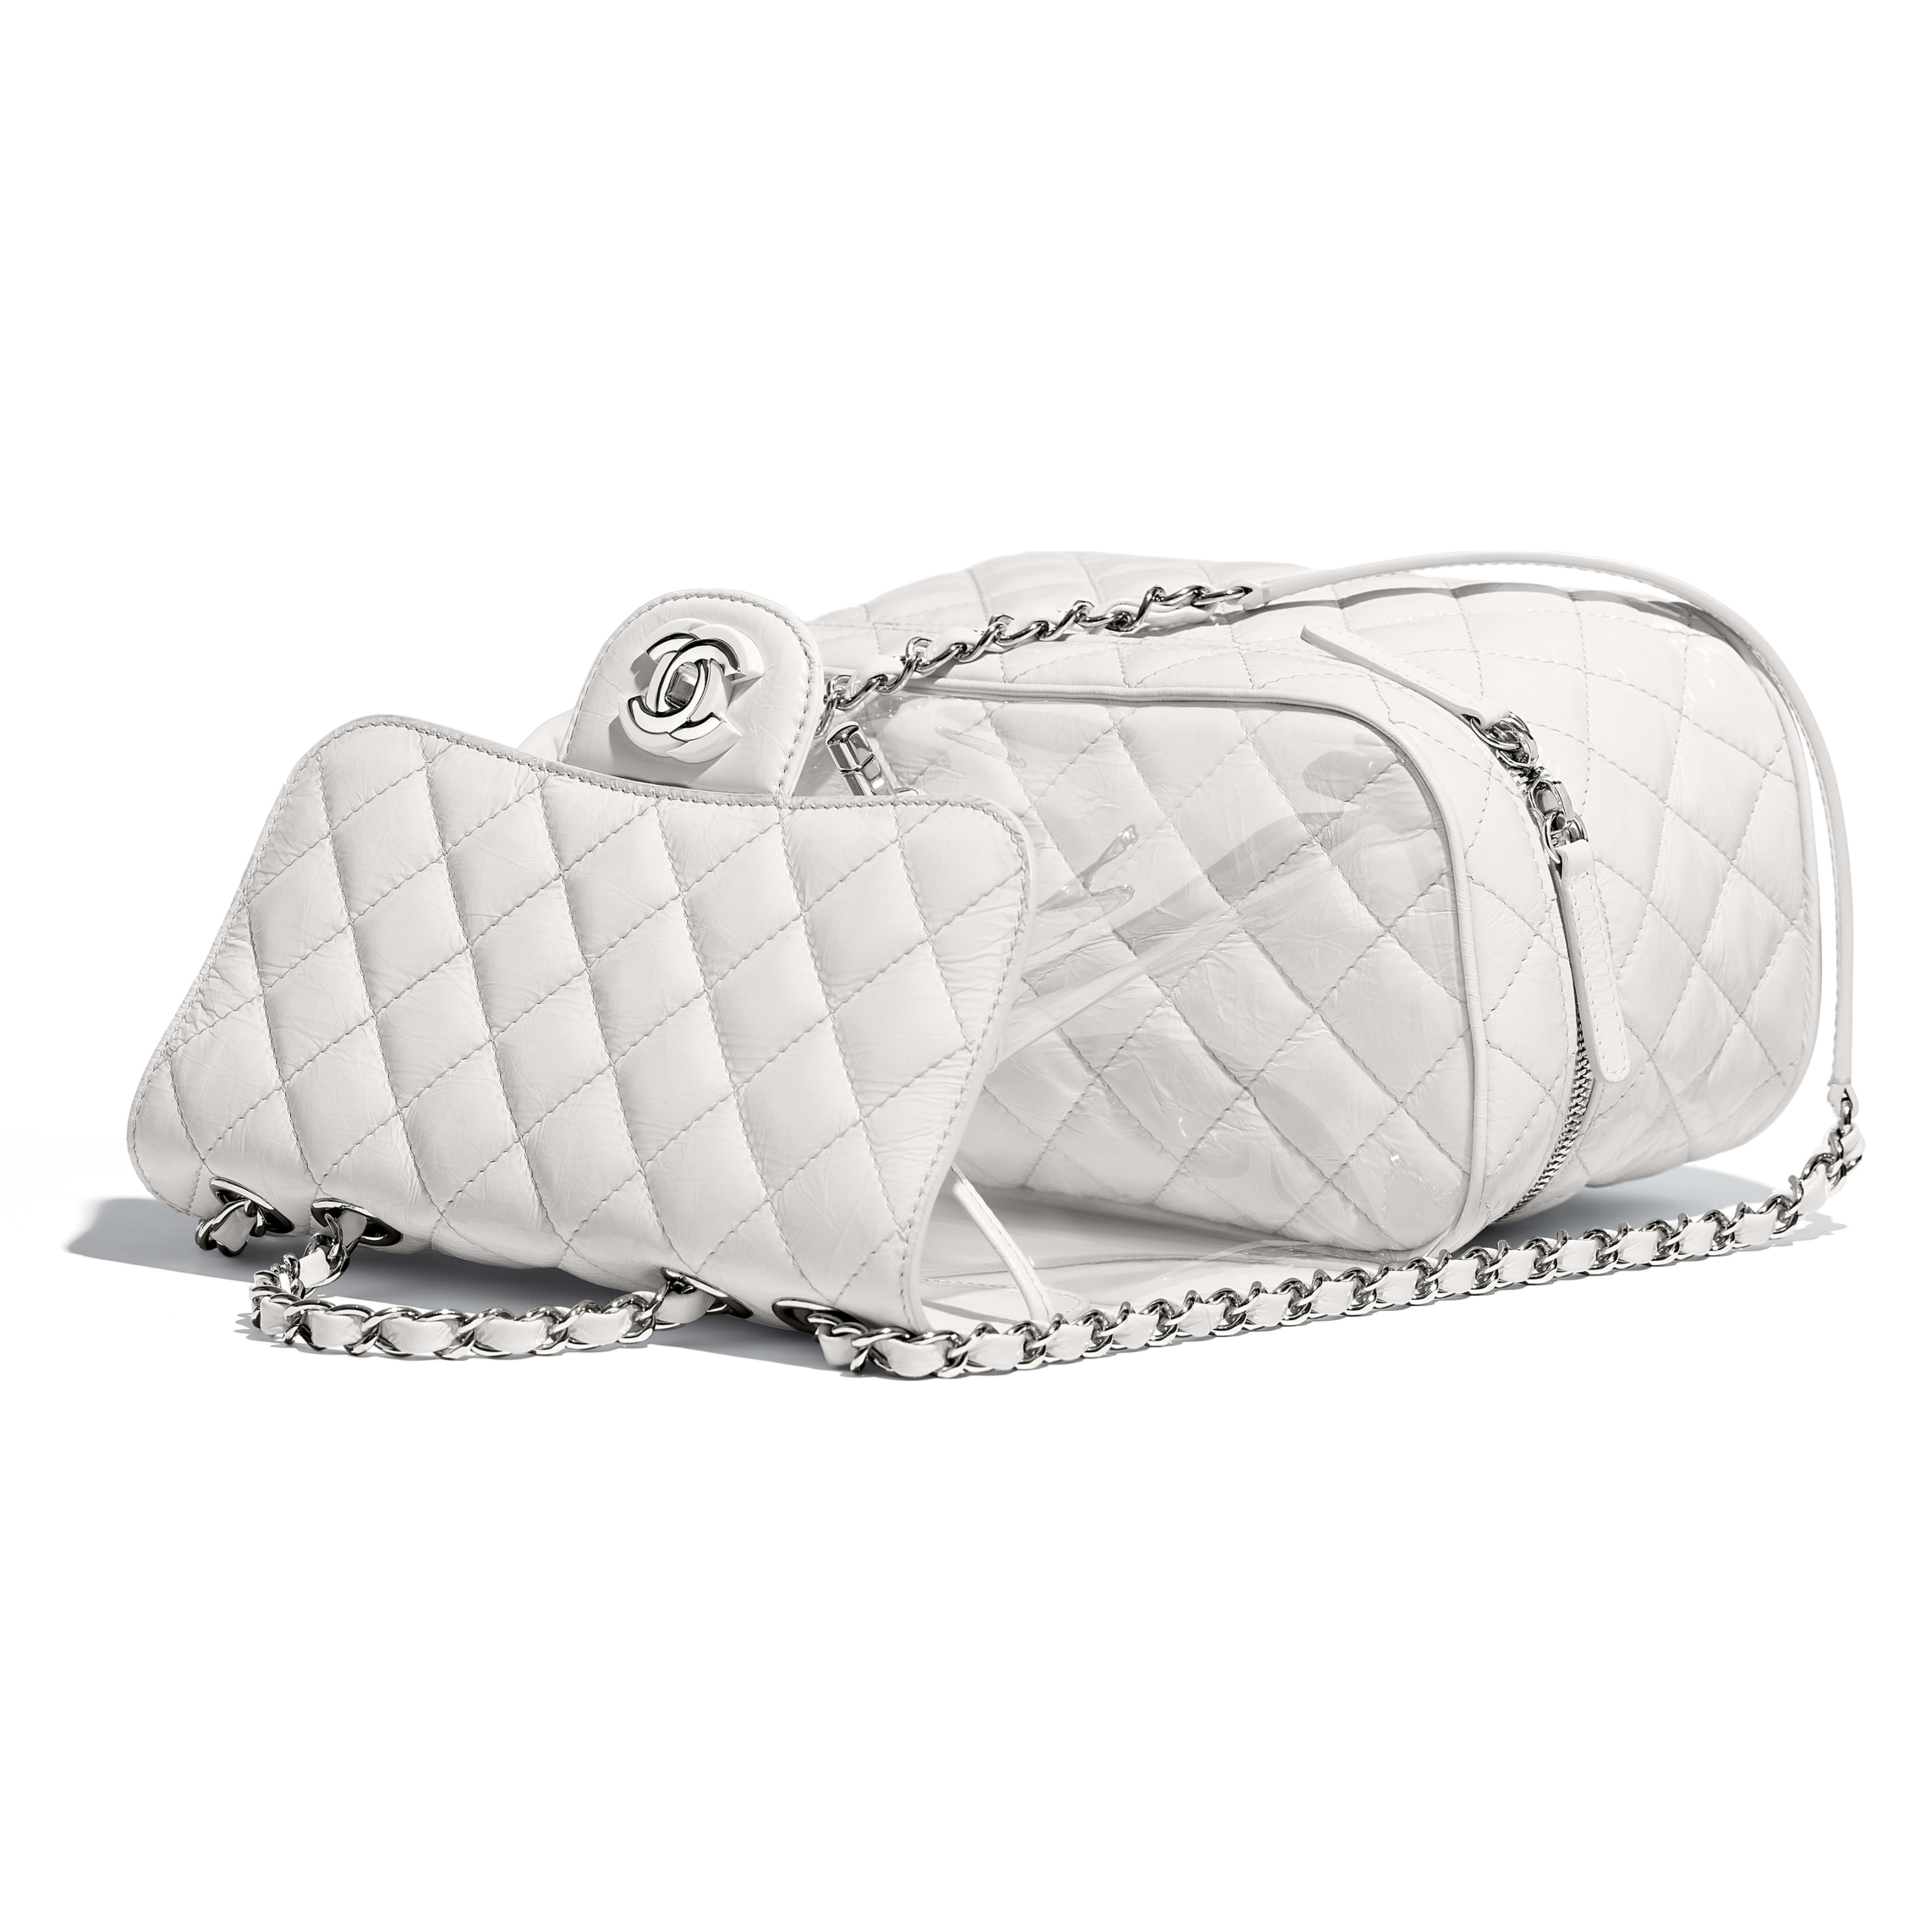 Flap Bag Crumpled Calfskin, PVC, Resin & Silver-Tone Metal White -                                            view 3 - see full sized version